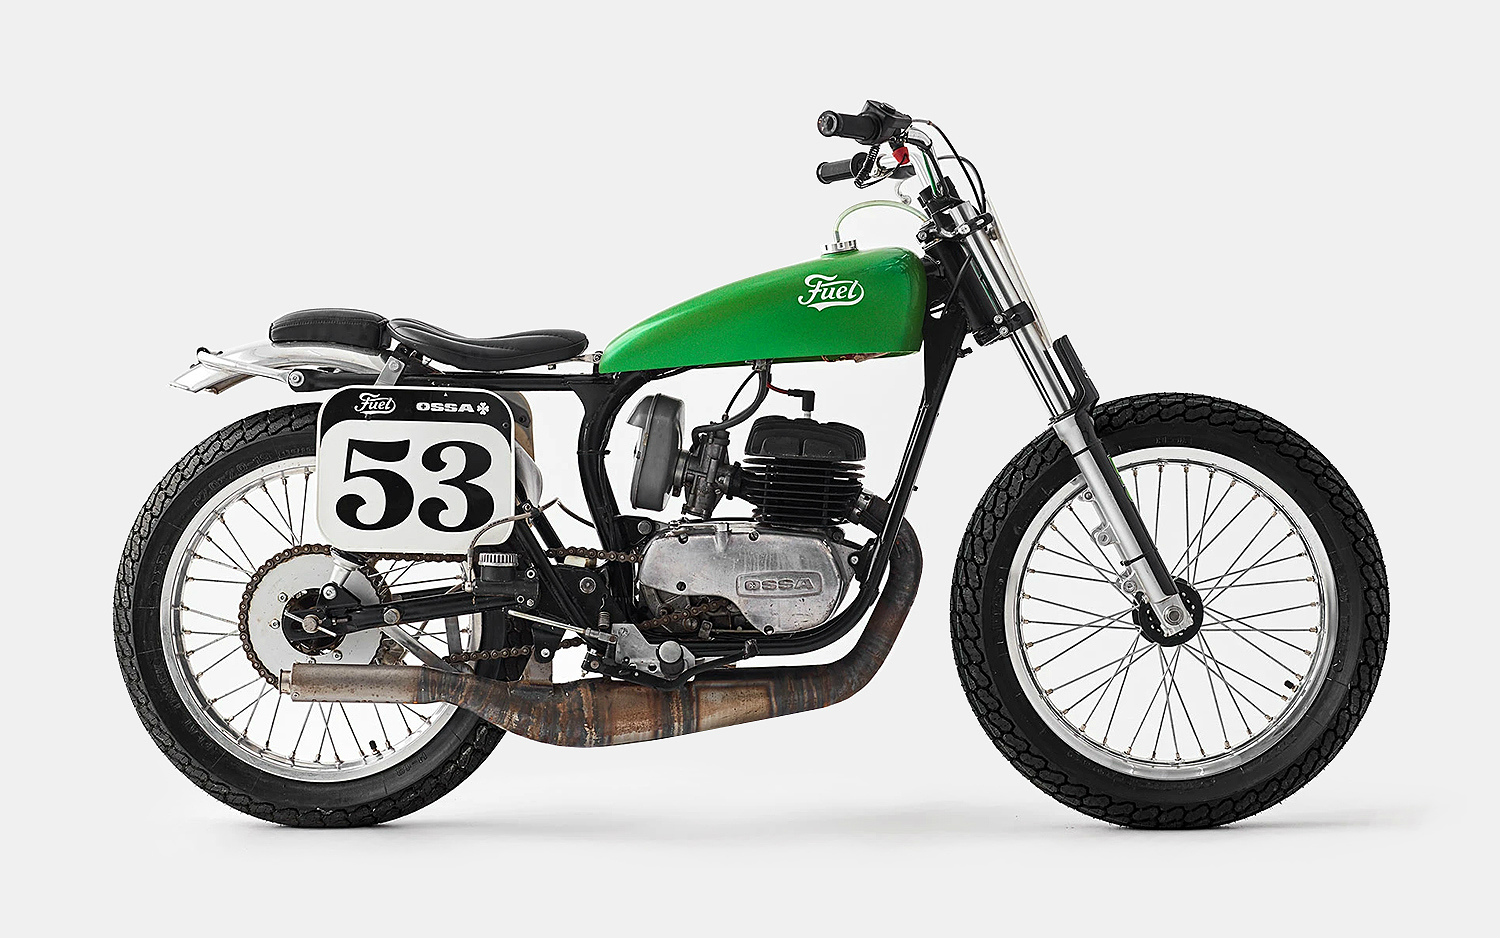 Fuel Motorcycles The Green Wasp OSSA Mototcycle